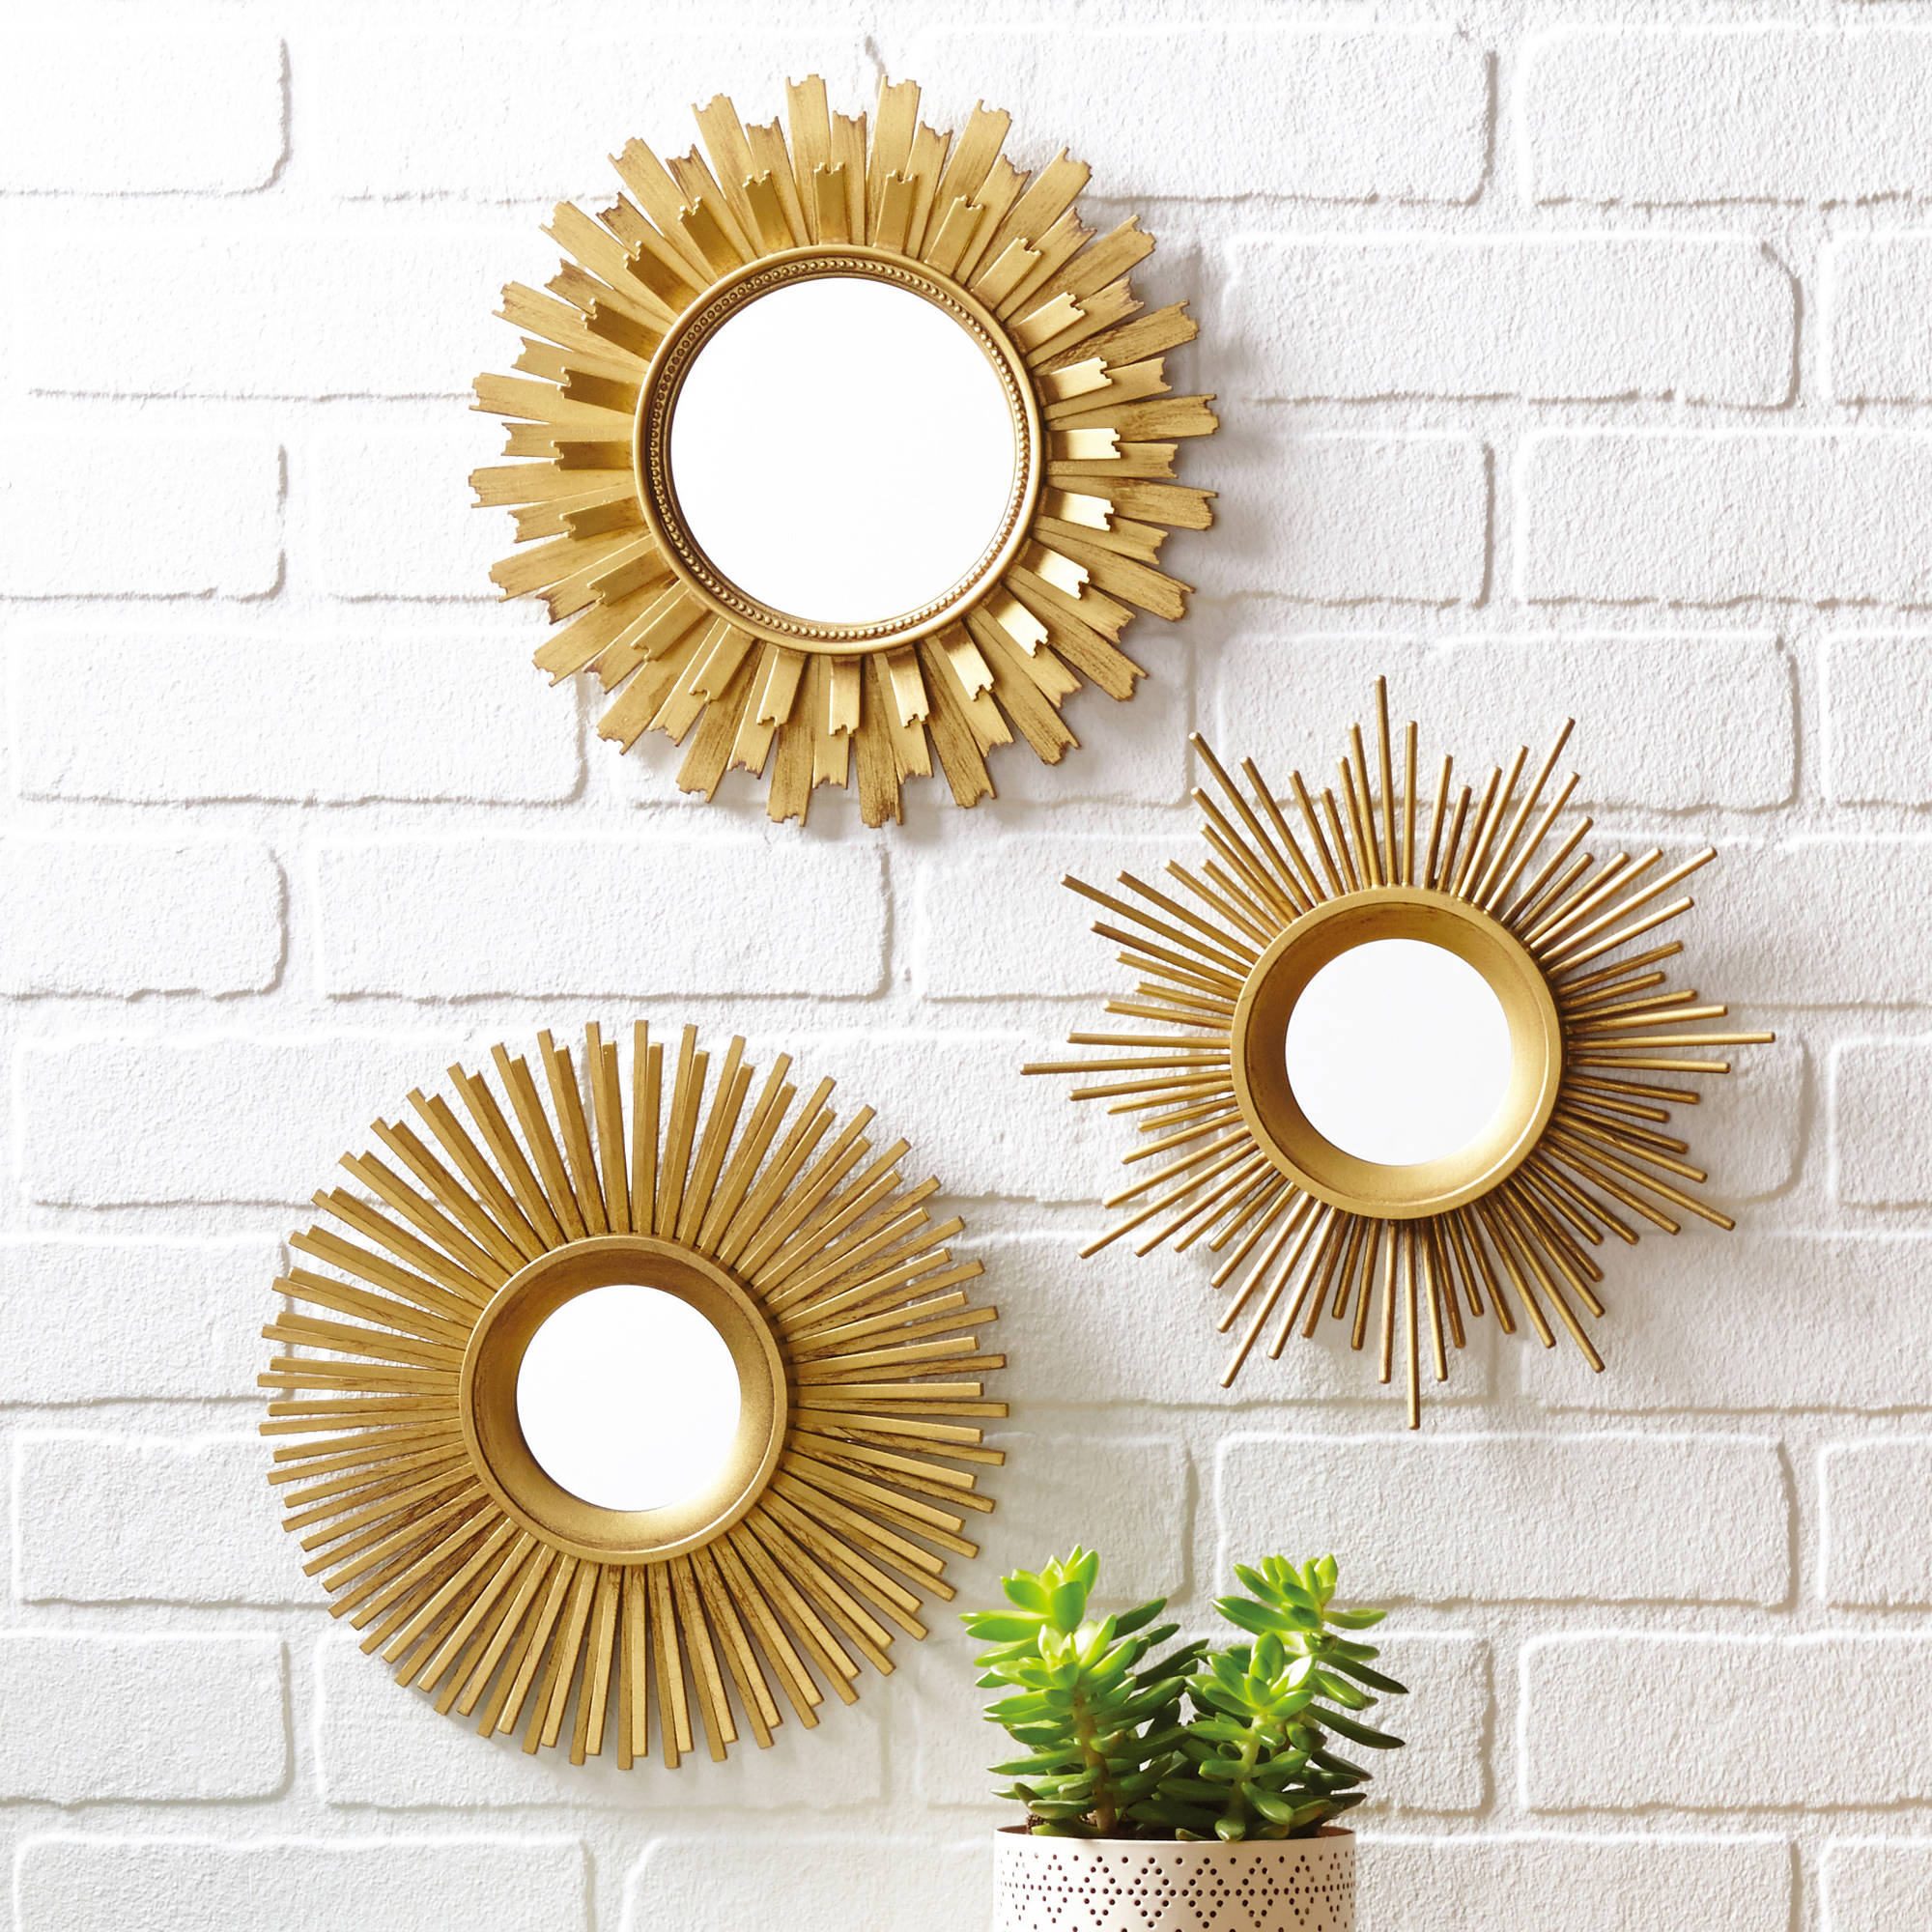 2020 Mainstays White Baroque Florence Wall Mirrors, Set Of 3 Regarding Set Of Wall Mirrors (View 10 of 20)